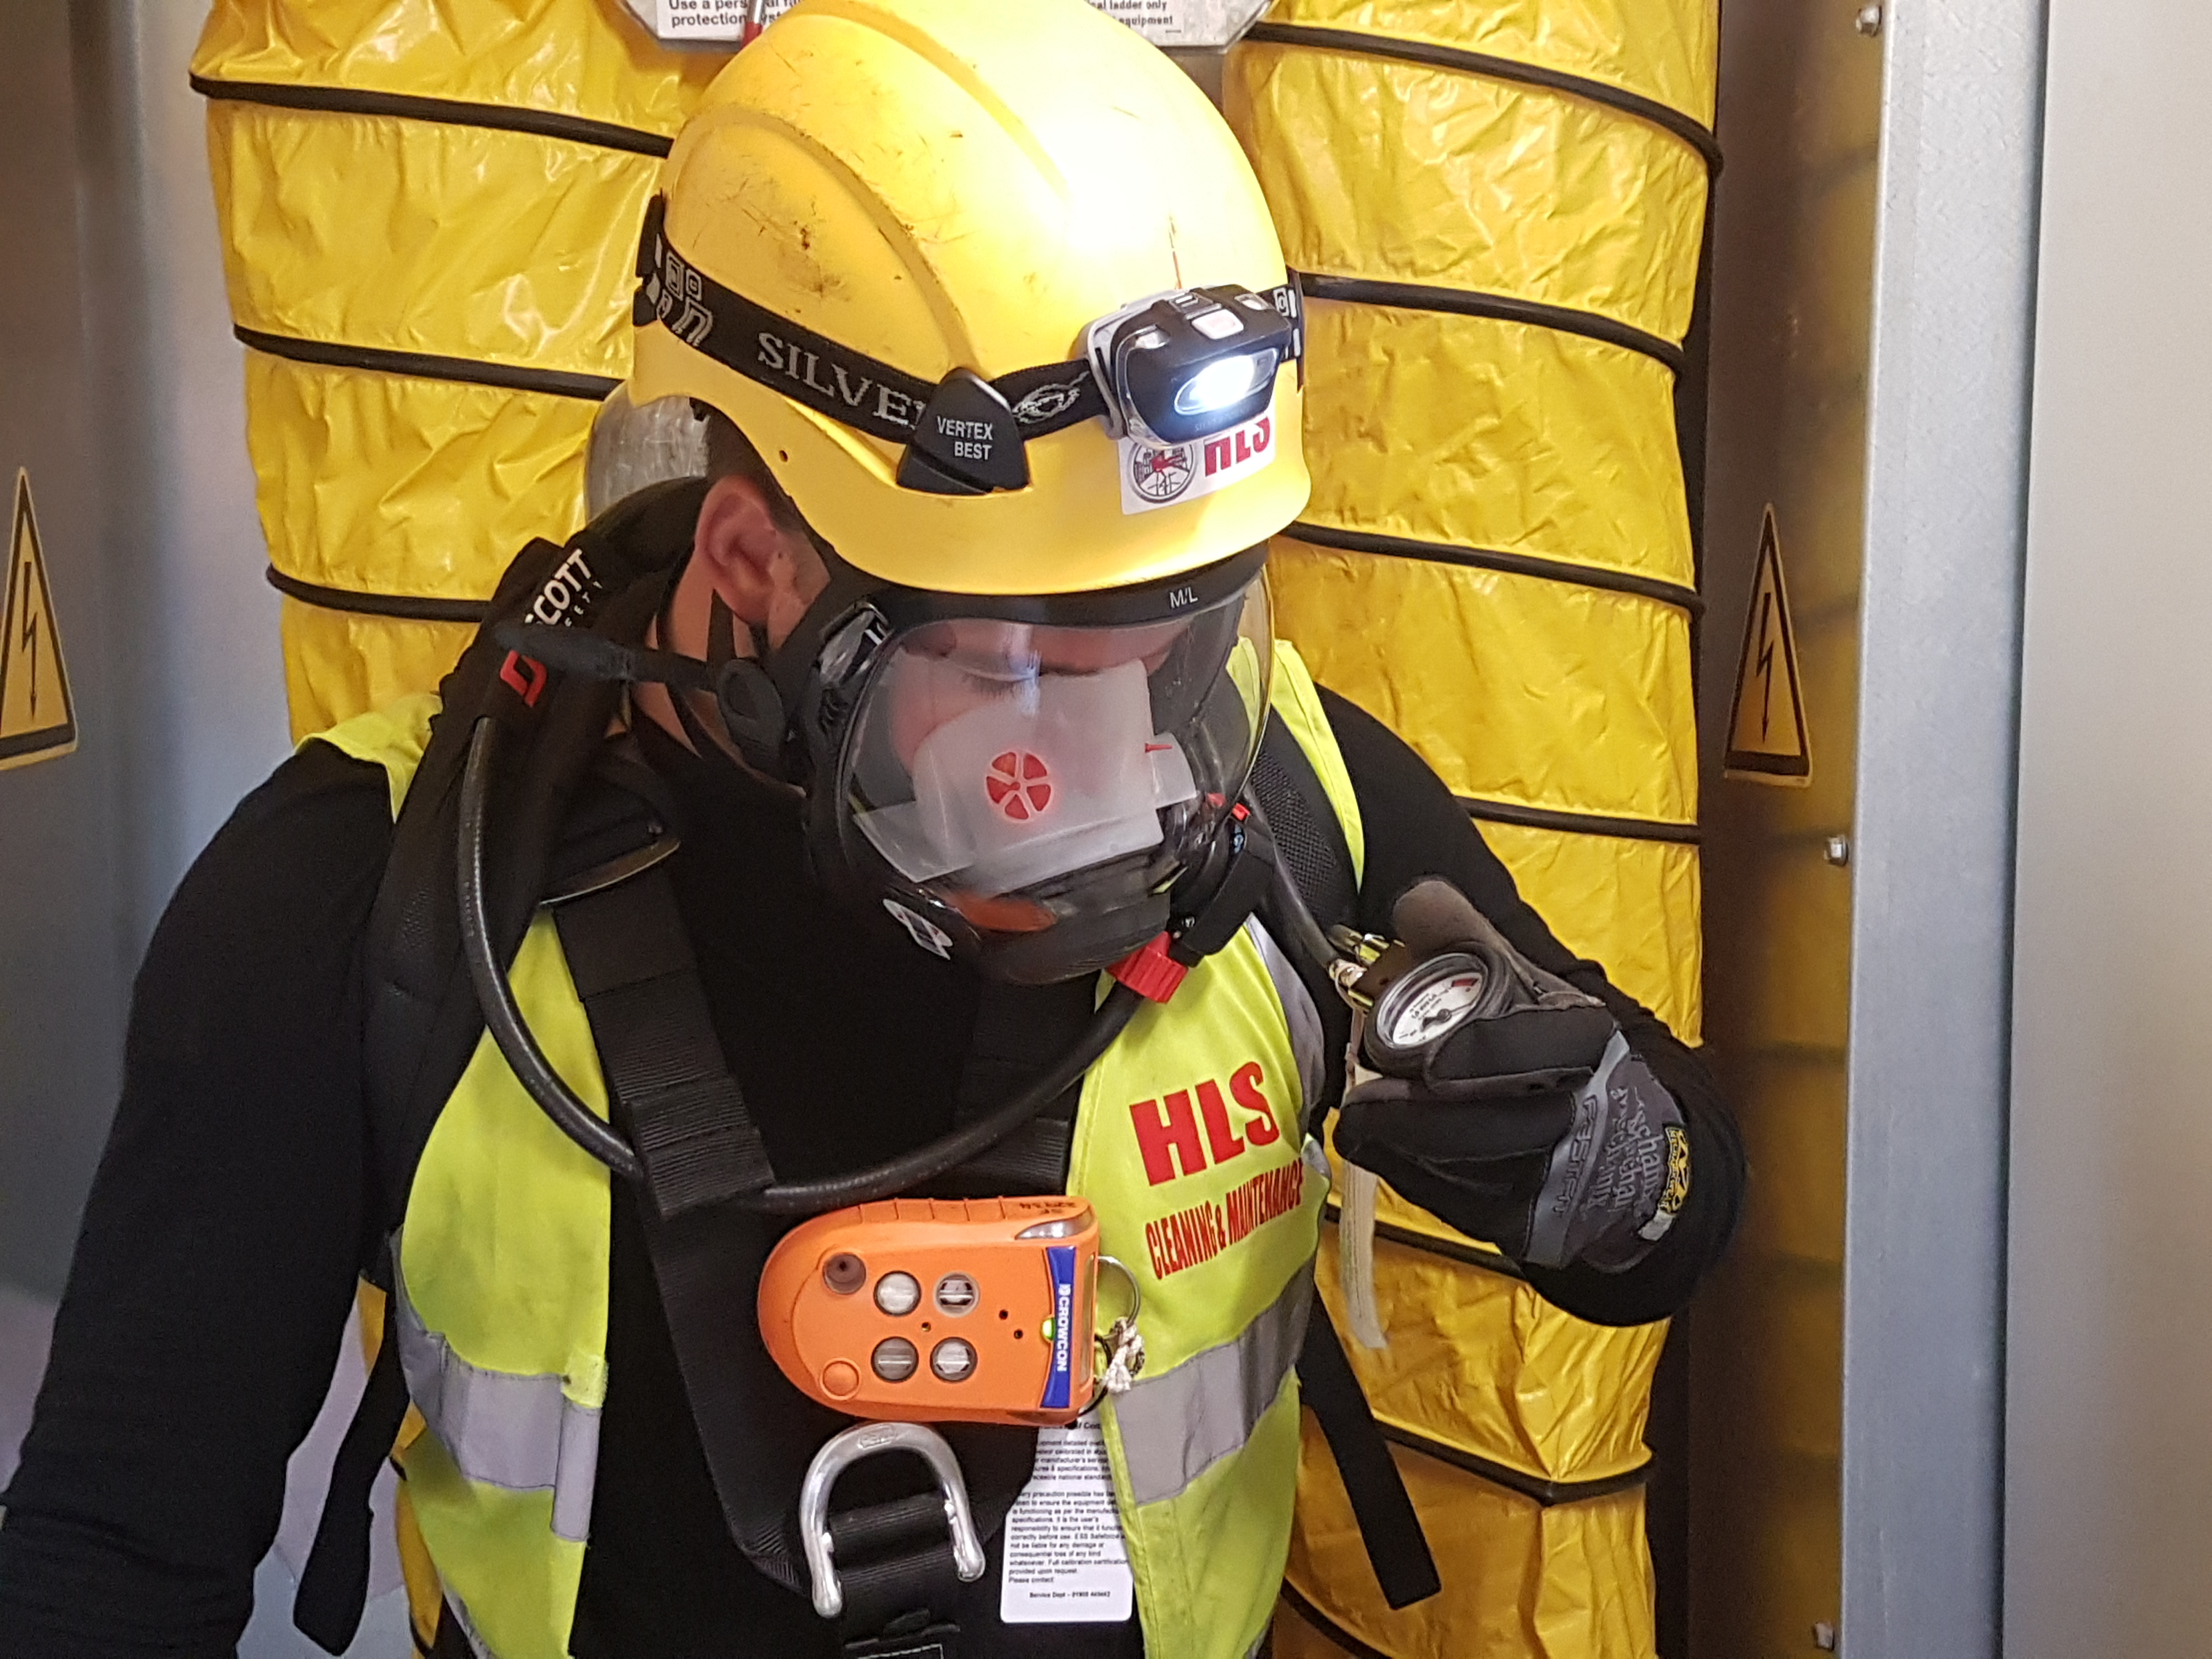 Health and Safety - High Level Specialists - Ensuring the strictest health and safety procedures on all projects.